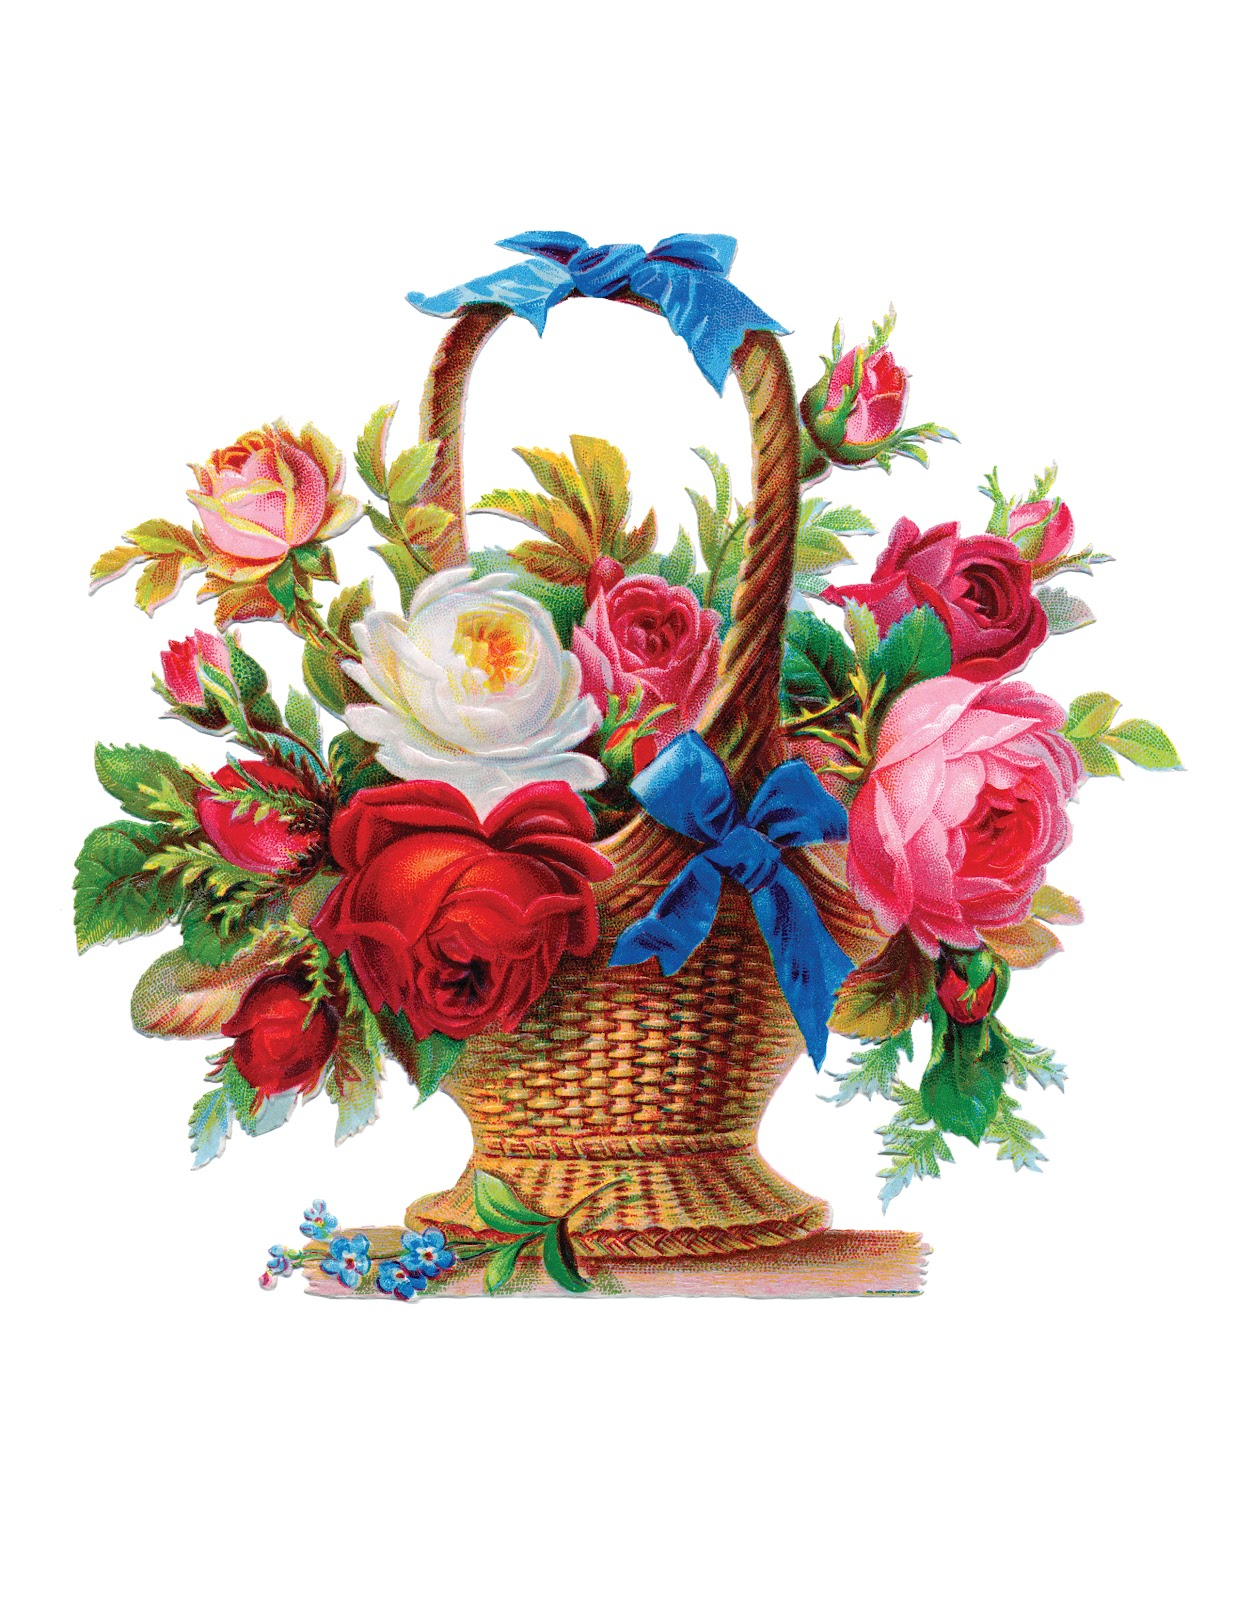 Flower Baskets Photos : Flowers basket pics clipart best